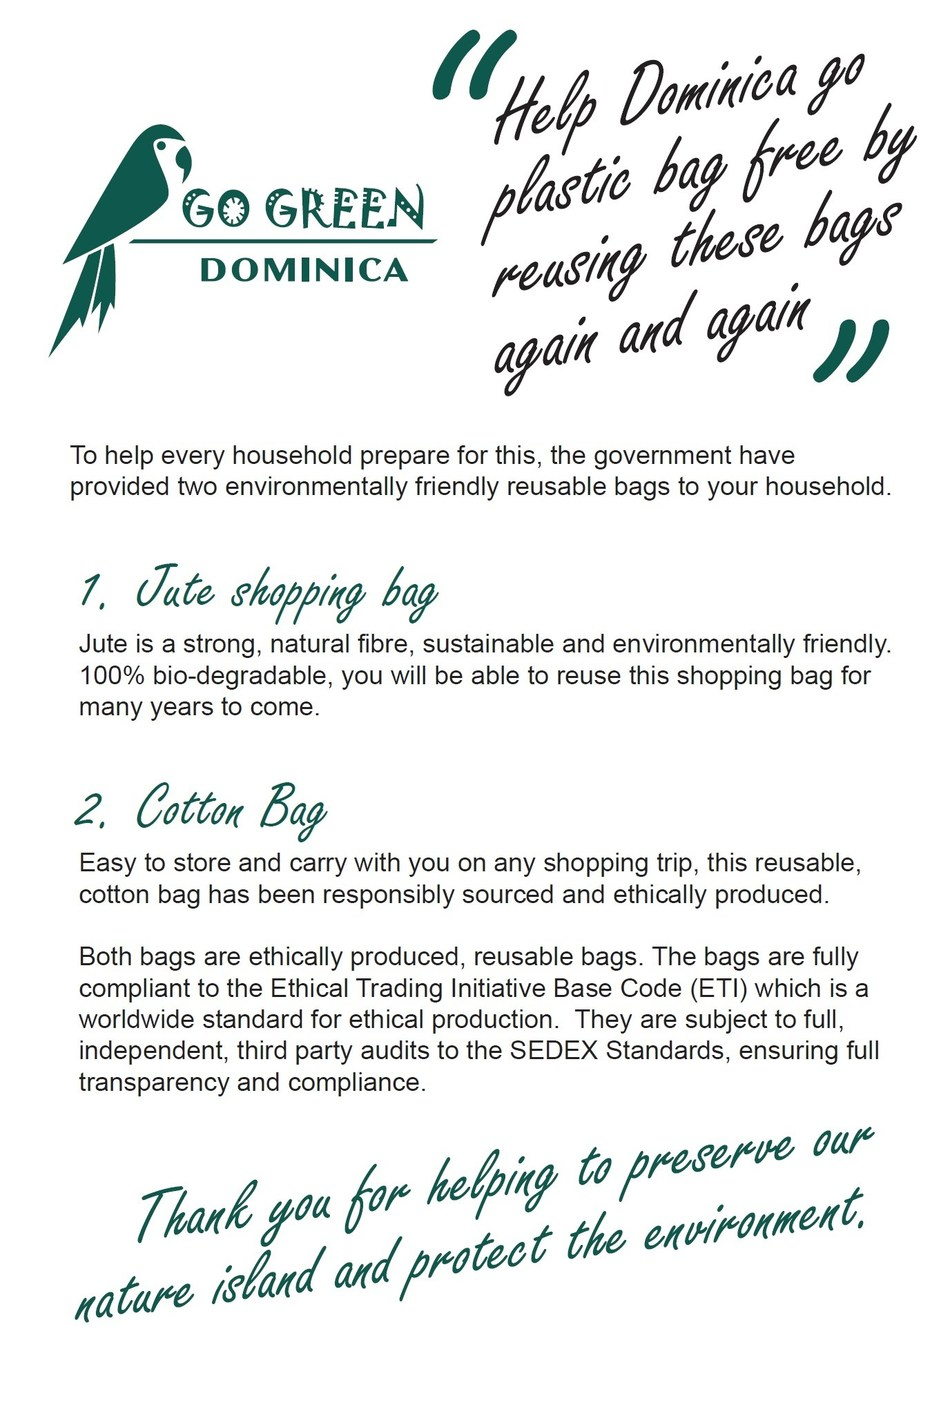 Go Green Dominica - The Dominican Government will provide all households on the island with jute and cotton bags to use as a sustainable alternative to plastic bags.